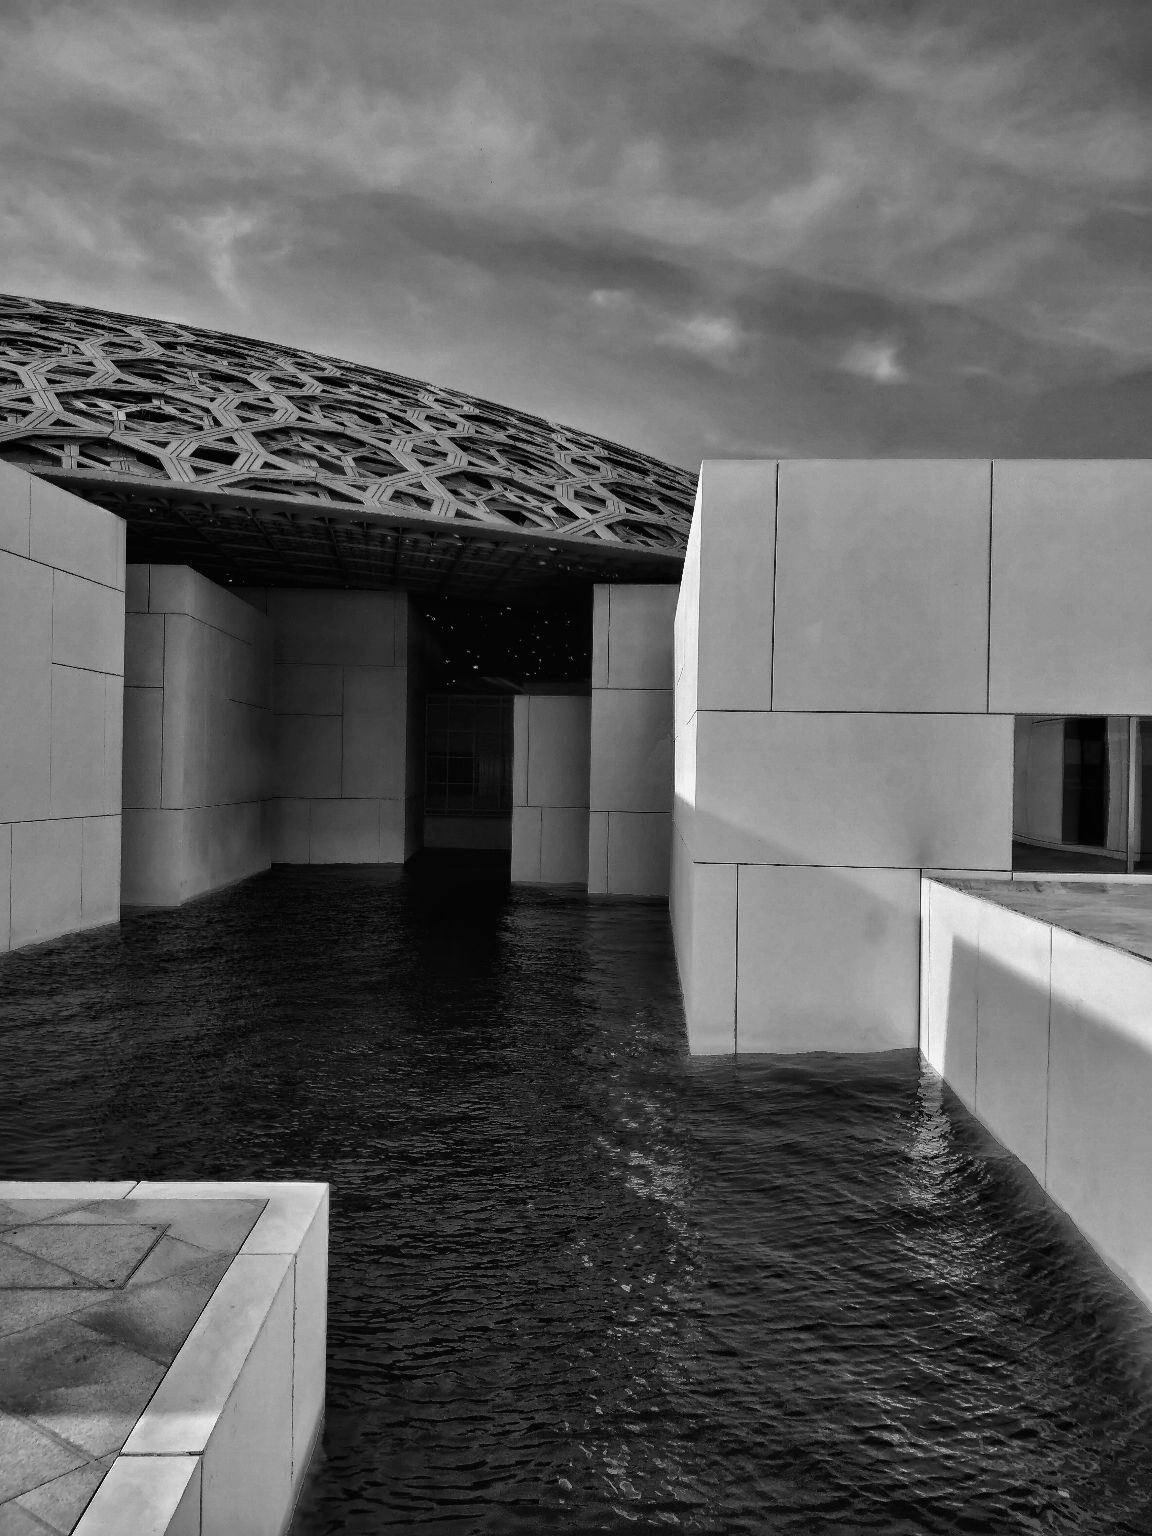 Photo of Louvre Abu Dhabi - Abu Dhabi - United Arab Emirates By Avijit Saroya